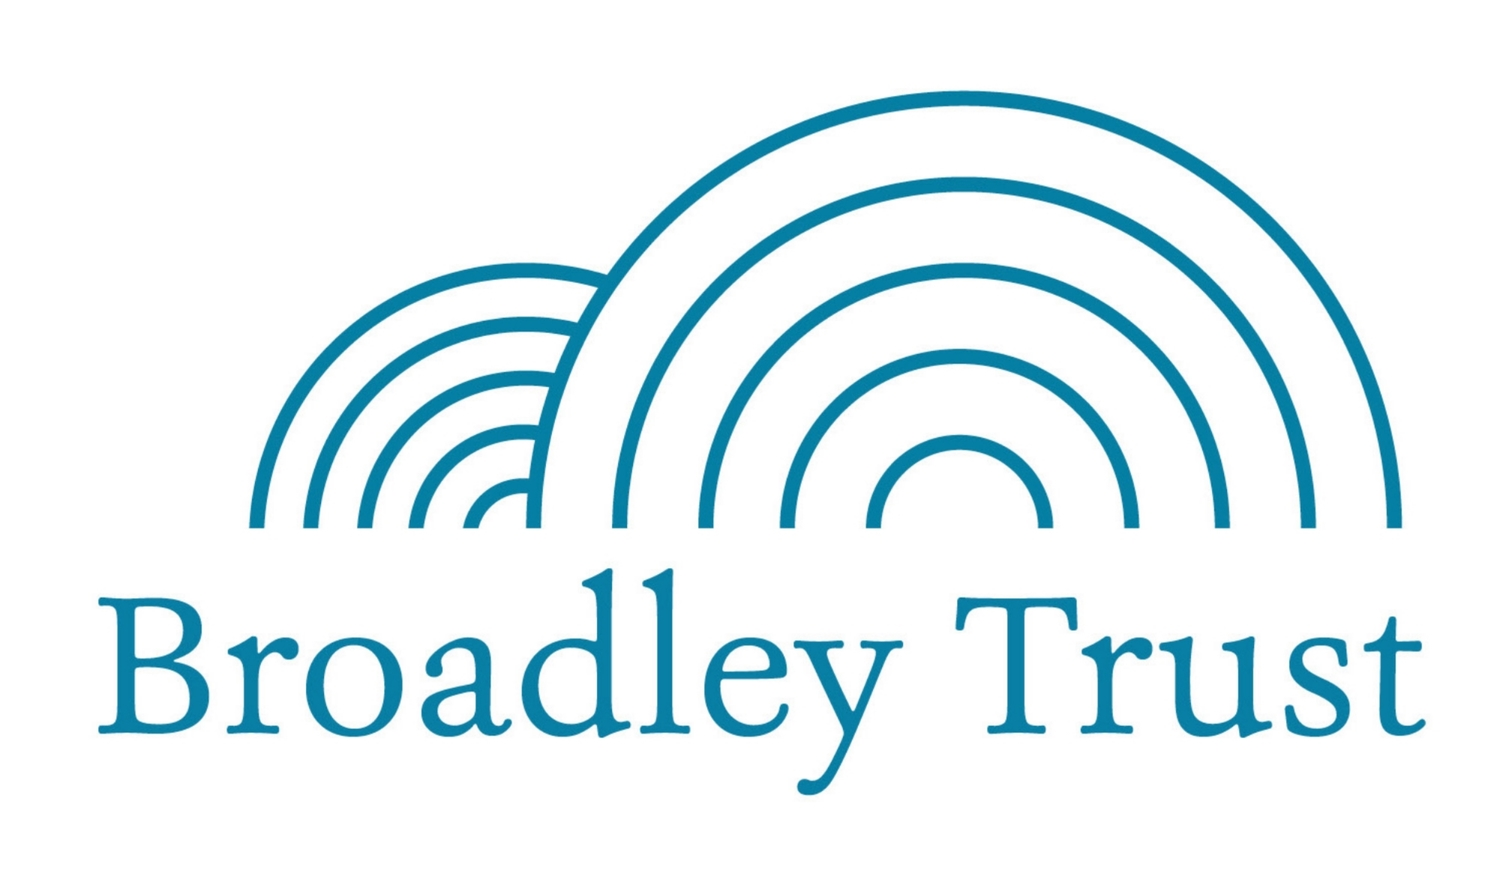 The Broadley Trust